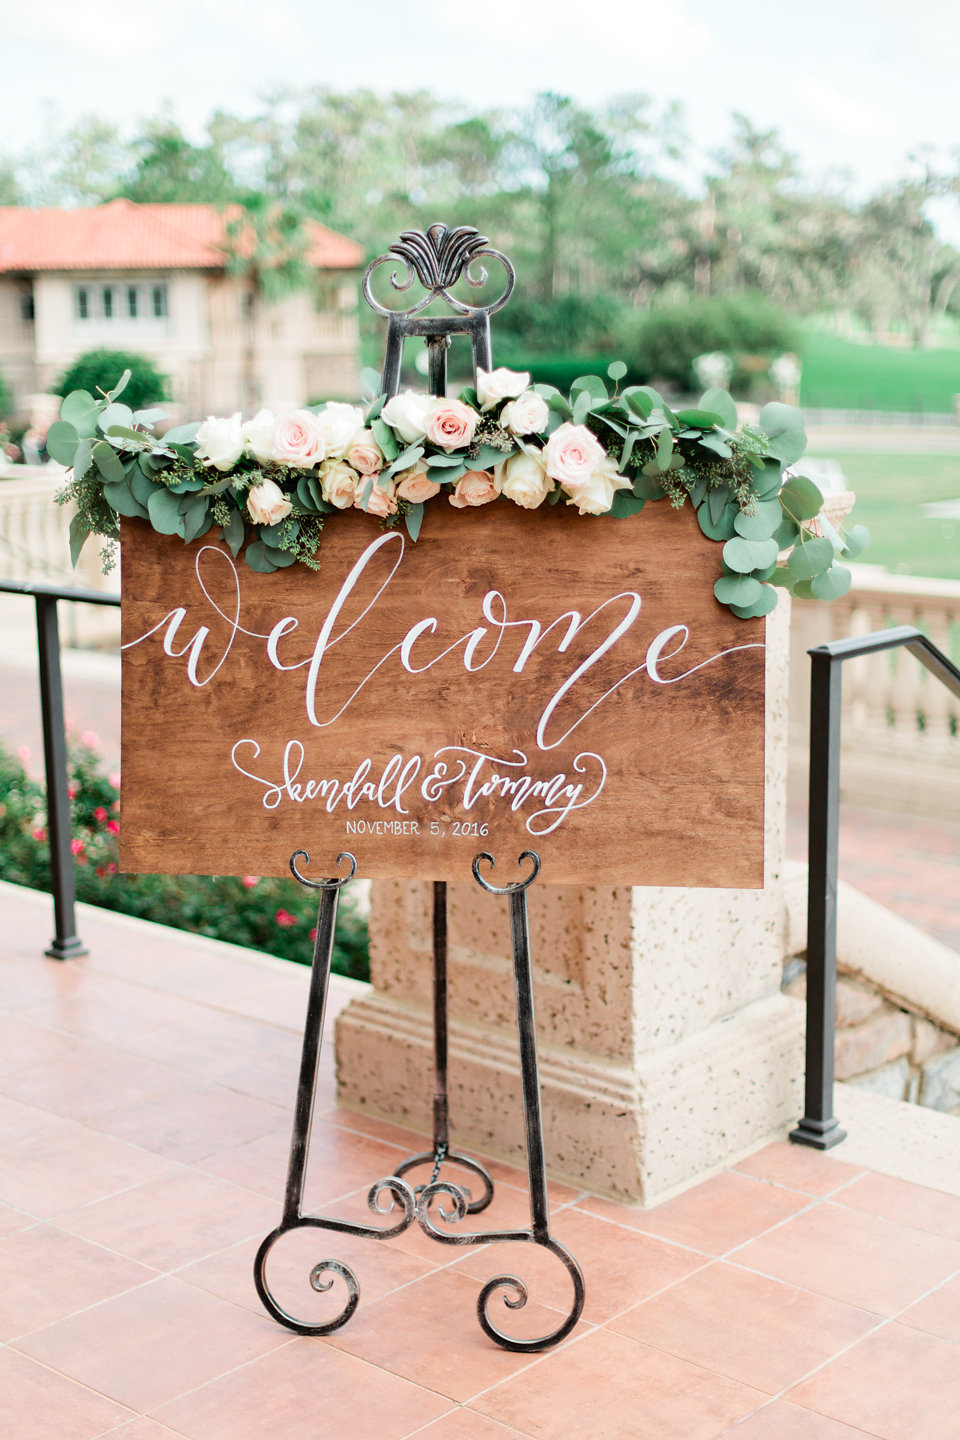 Wooden welcome sign with calligraphy and garland with blush and ivory flowers  Blush Wedding at TPC Sawgrass Wedding Ponte Vedra Beach  Jacksonville Wedding Planner Blue Ribbon Weddings  Jacksonville Wedding Photographer Debra Eby Photography  Wedding Ceremony & Reception at TPC Sawgrass Jacksonville